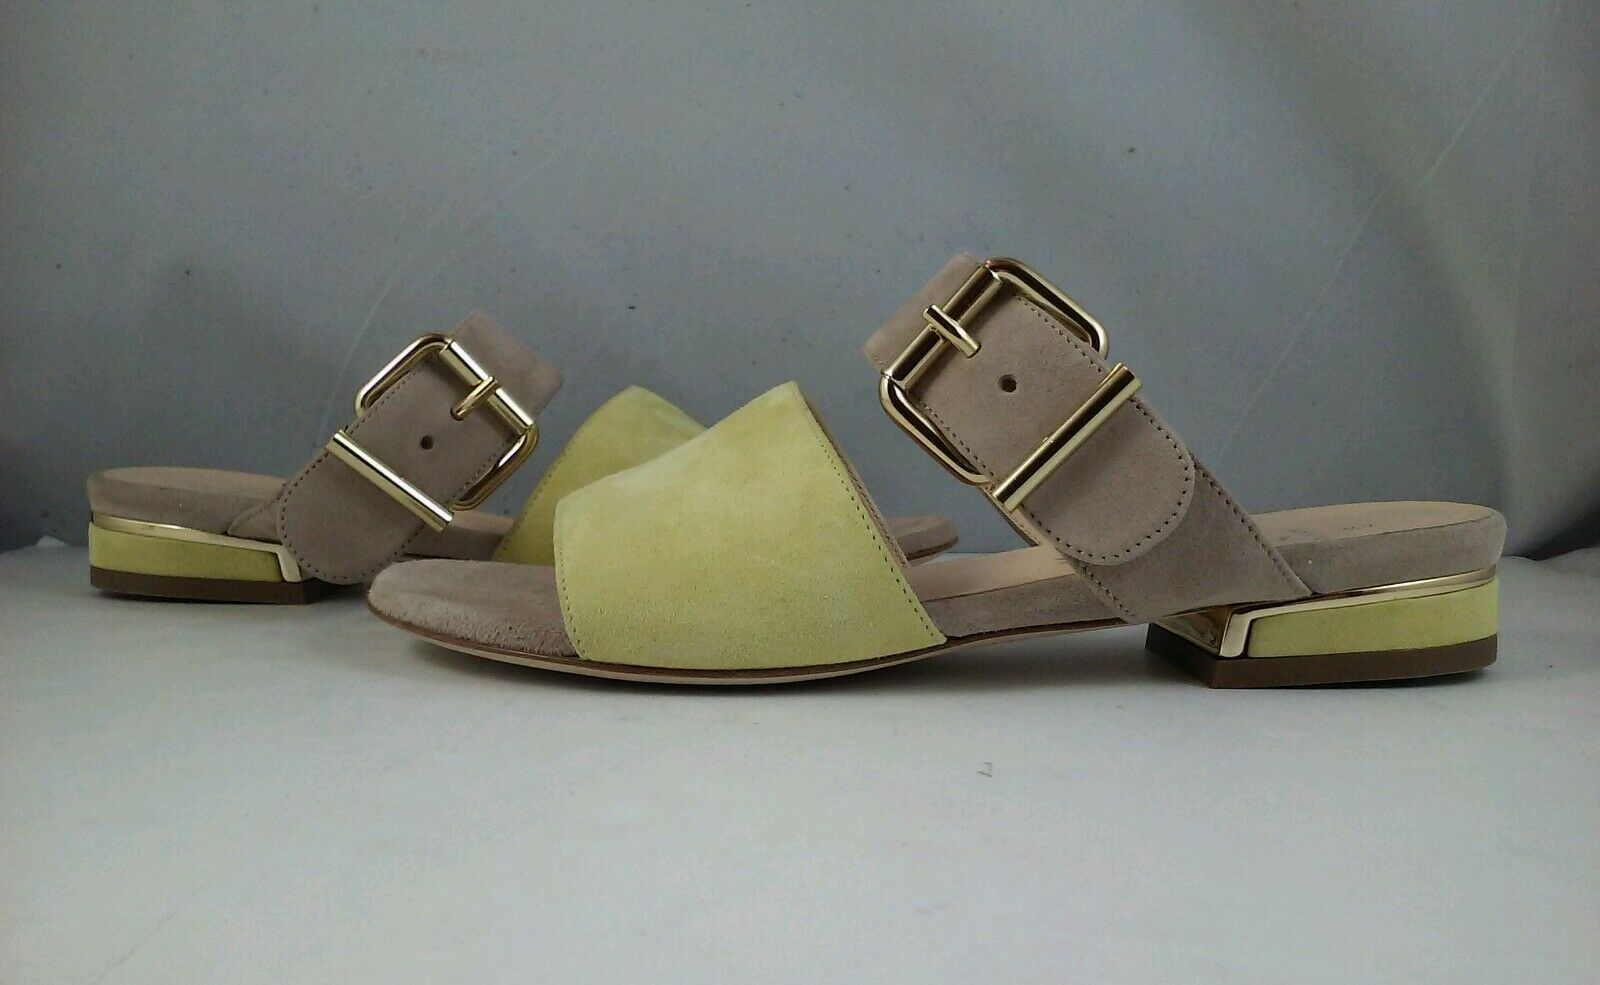 Aquatalia by Marvin K Abash Women's Yellow Stone Suede Sandals Size 6.5 B